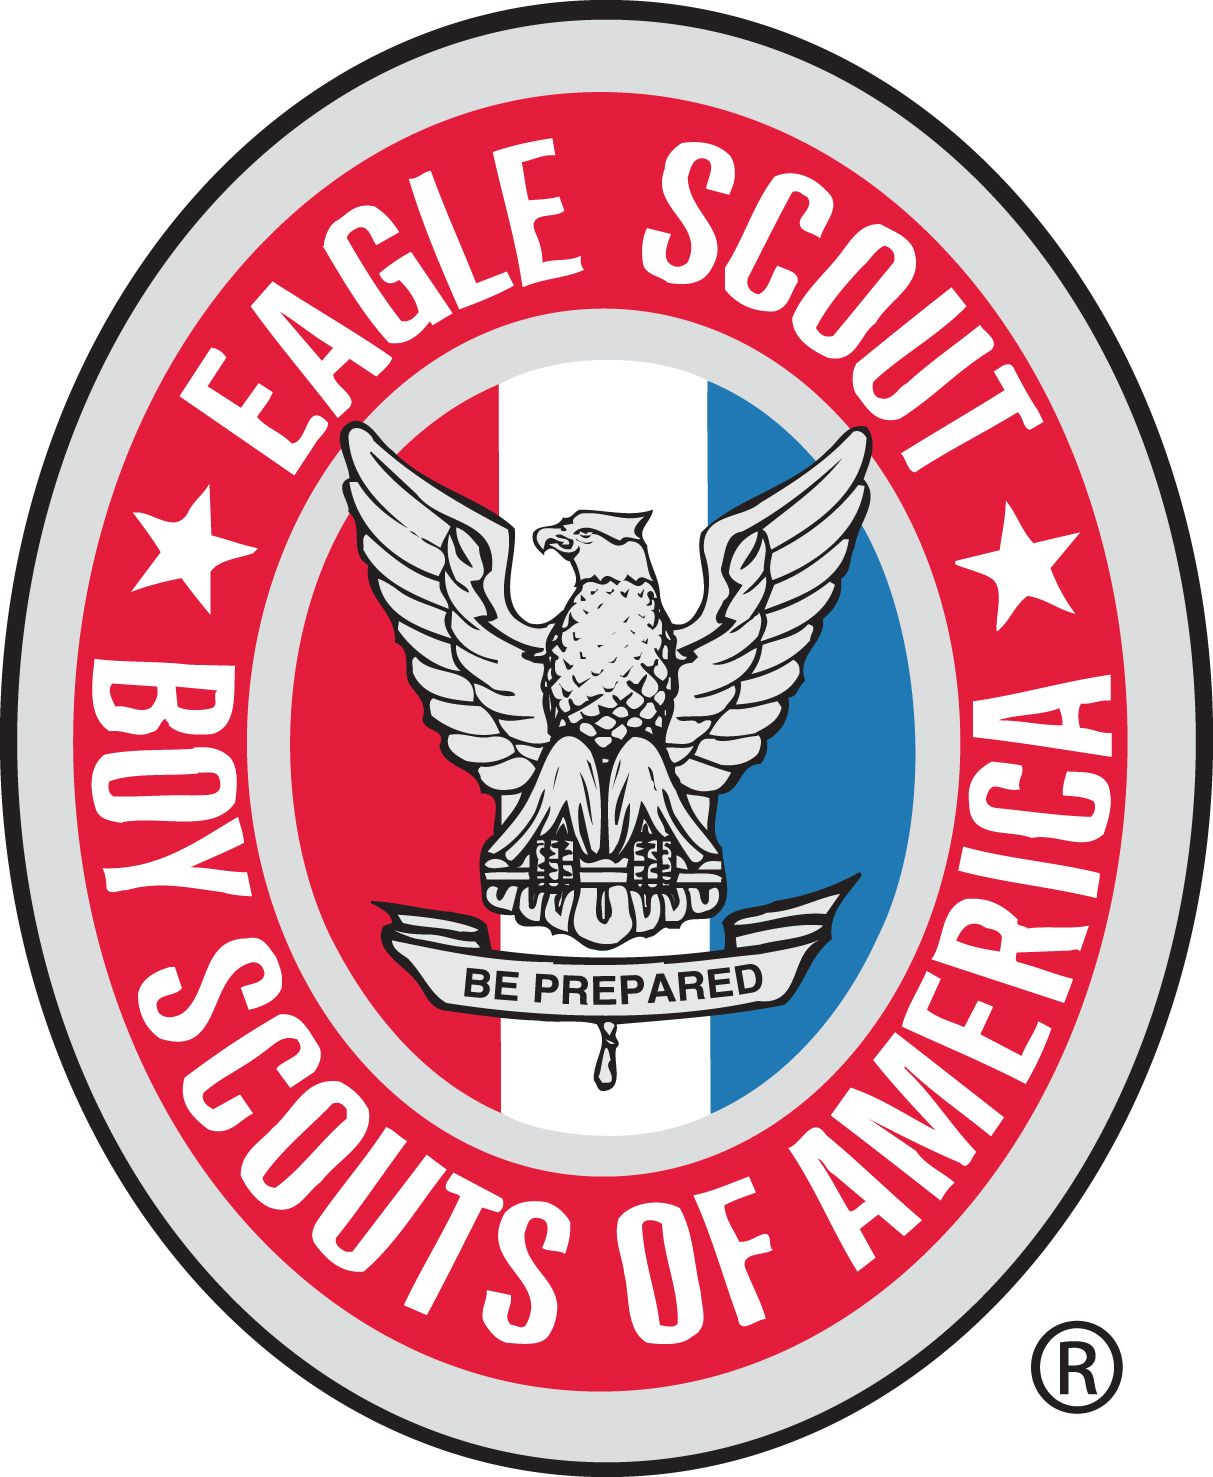 small resolution of eagle scout badge boy scout troop scout badges scout mom cub scouts